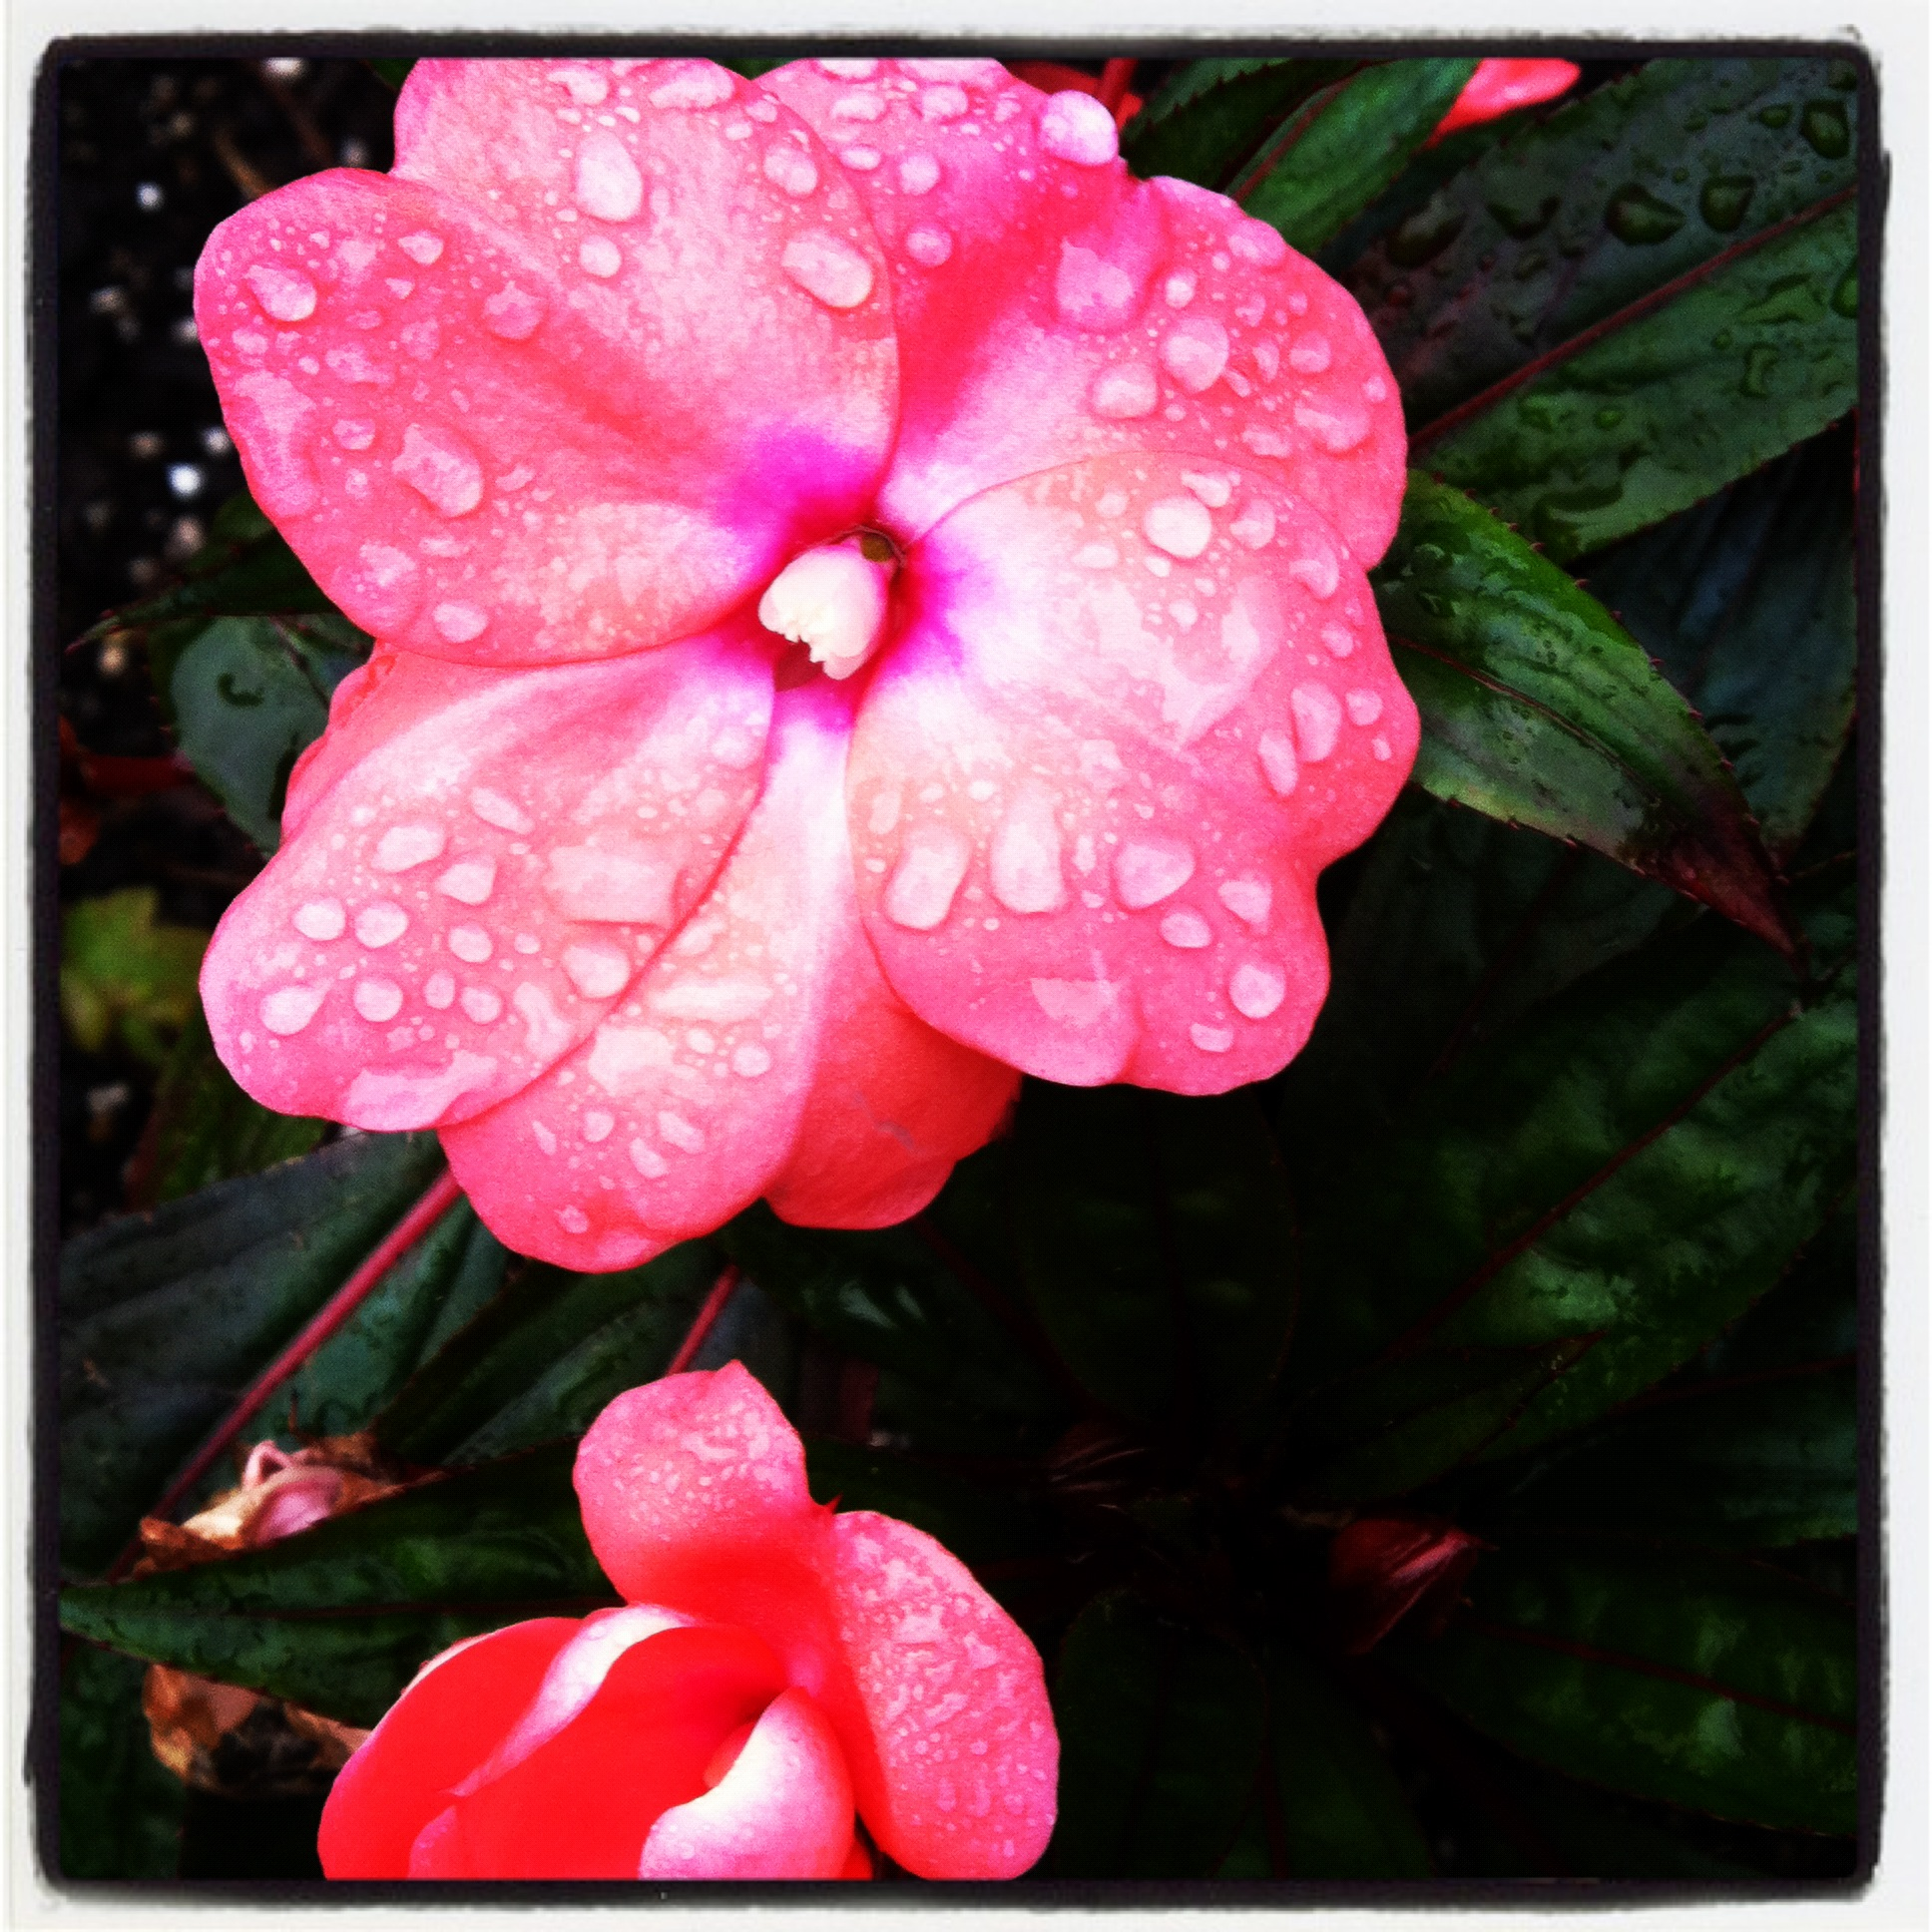 my ultimate favorite... pink, raindrops, and lots of beautiful color